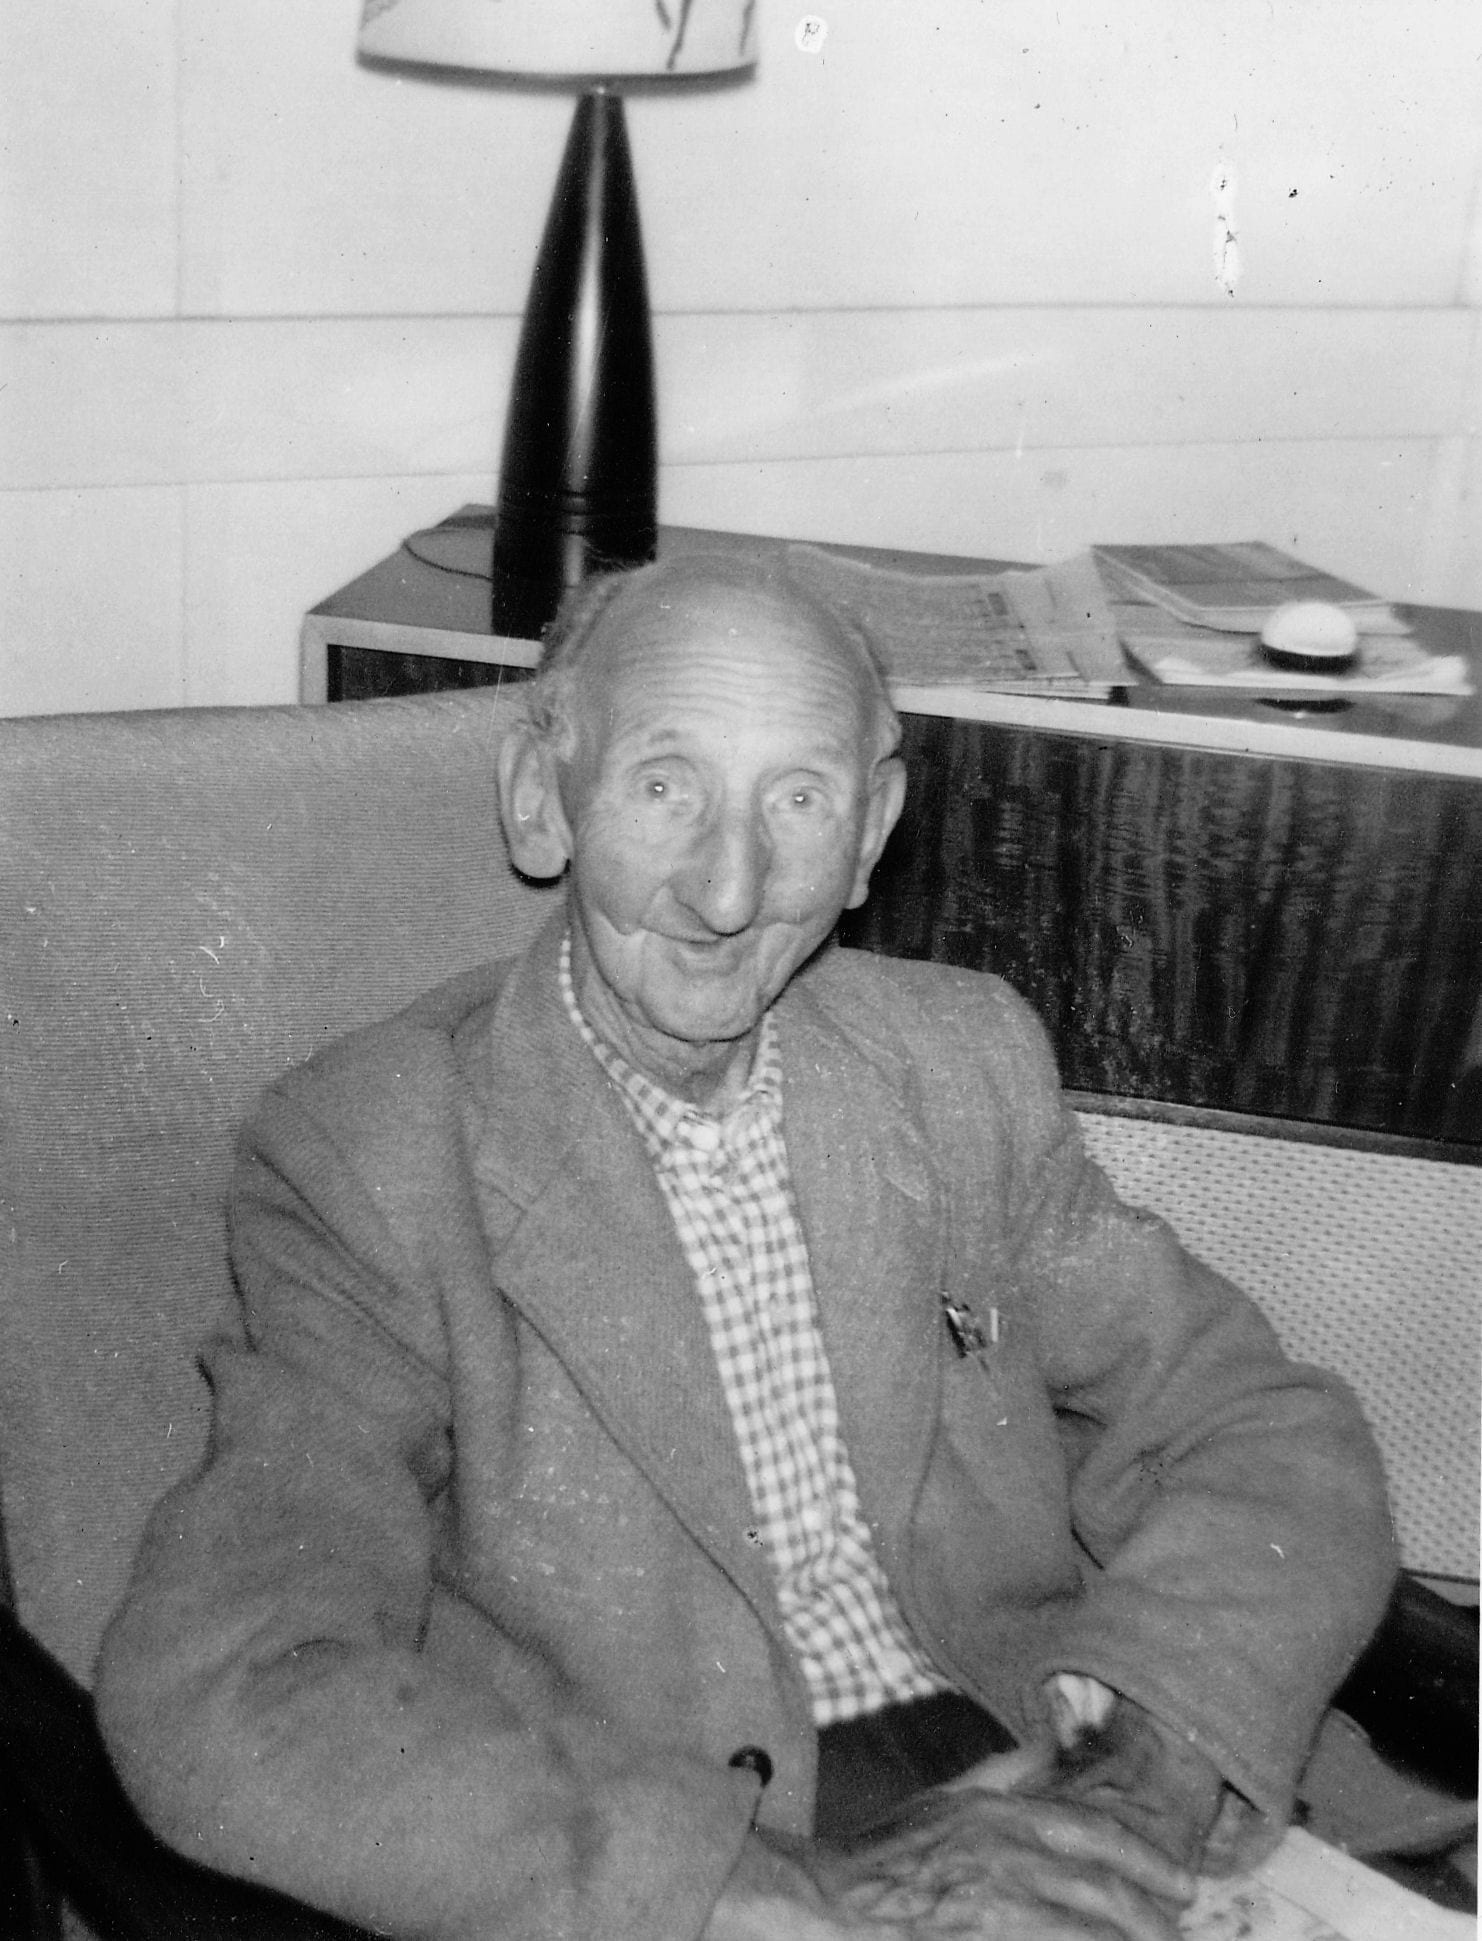 Black and white photograph of a patient many years after recovering and reconstruction from facial injury.